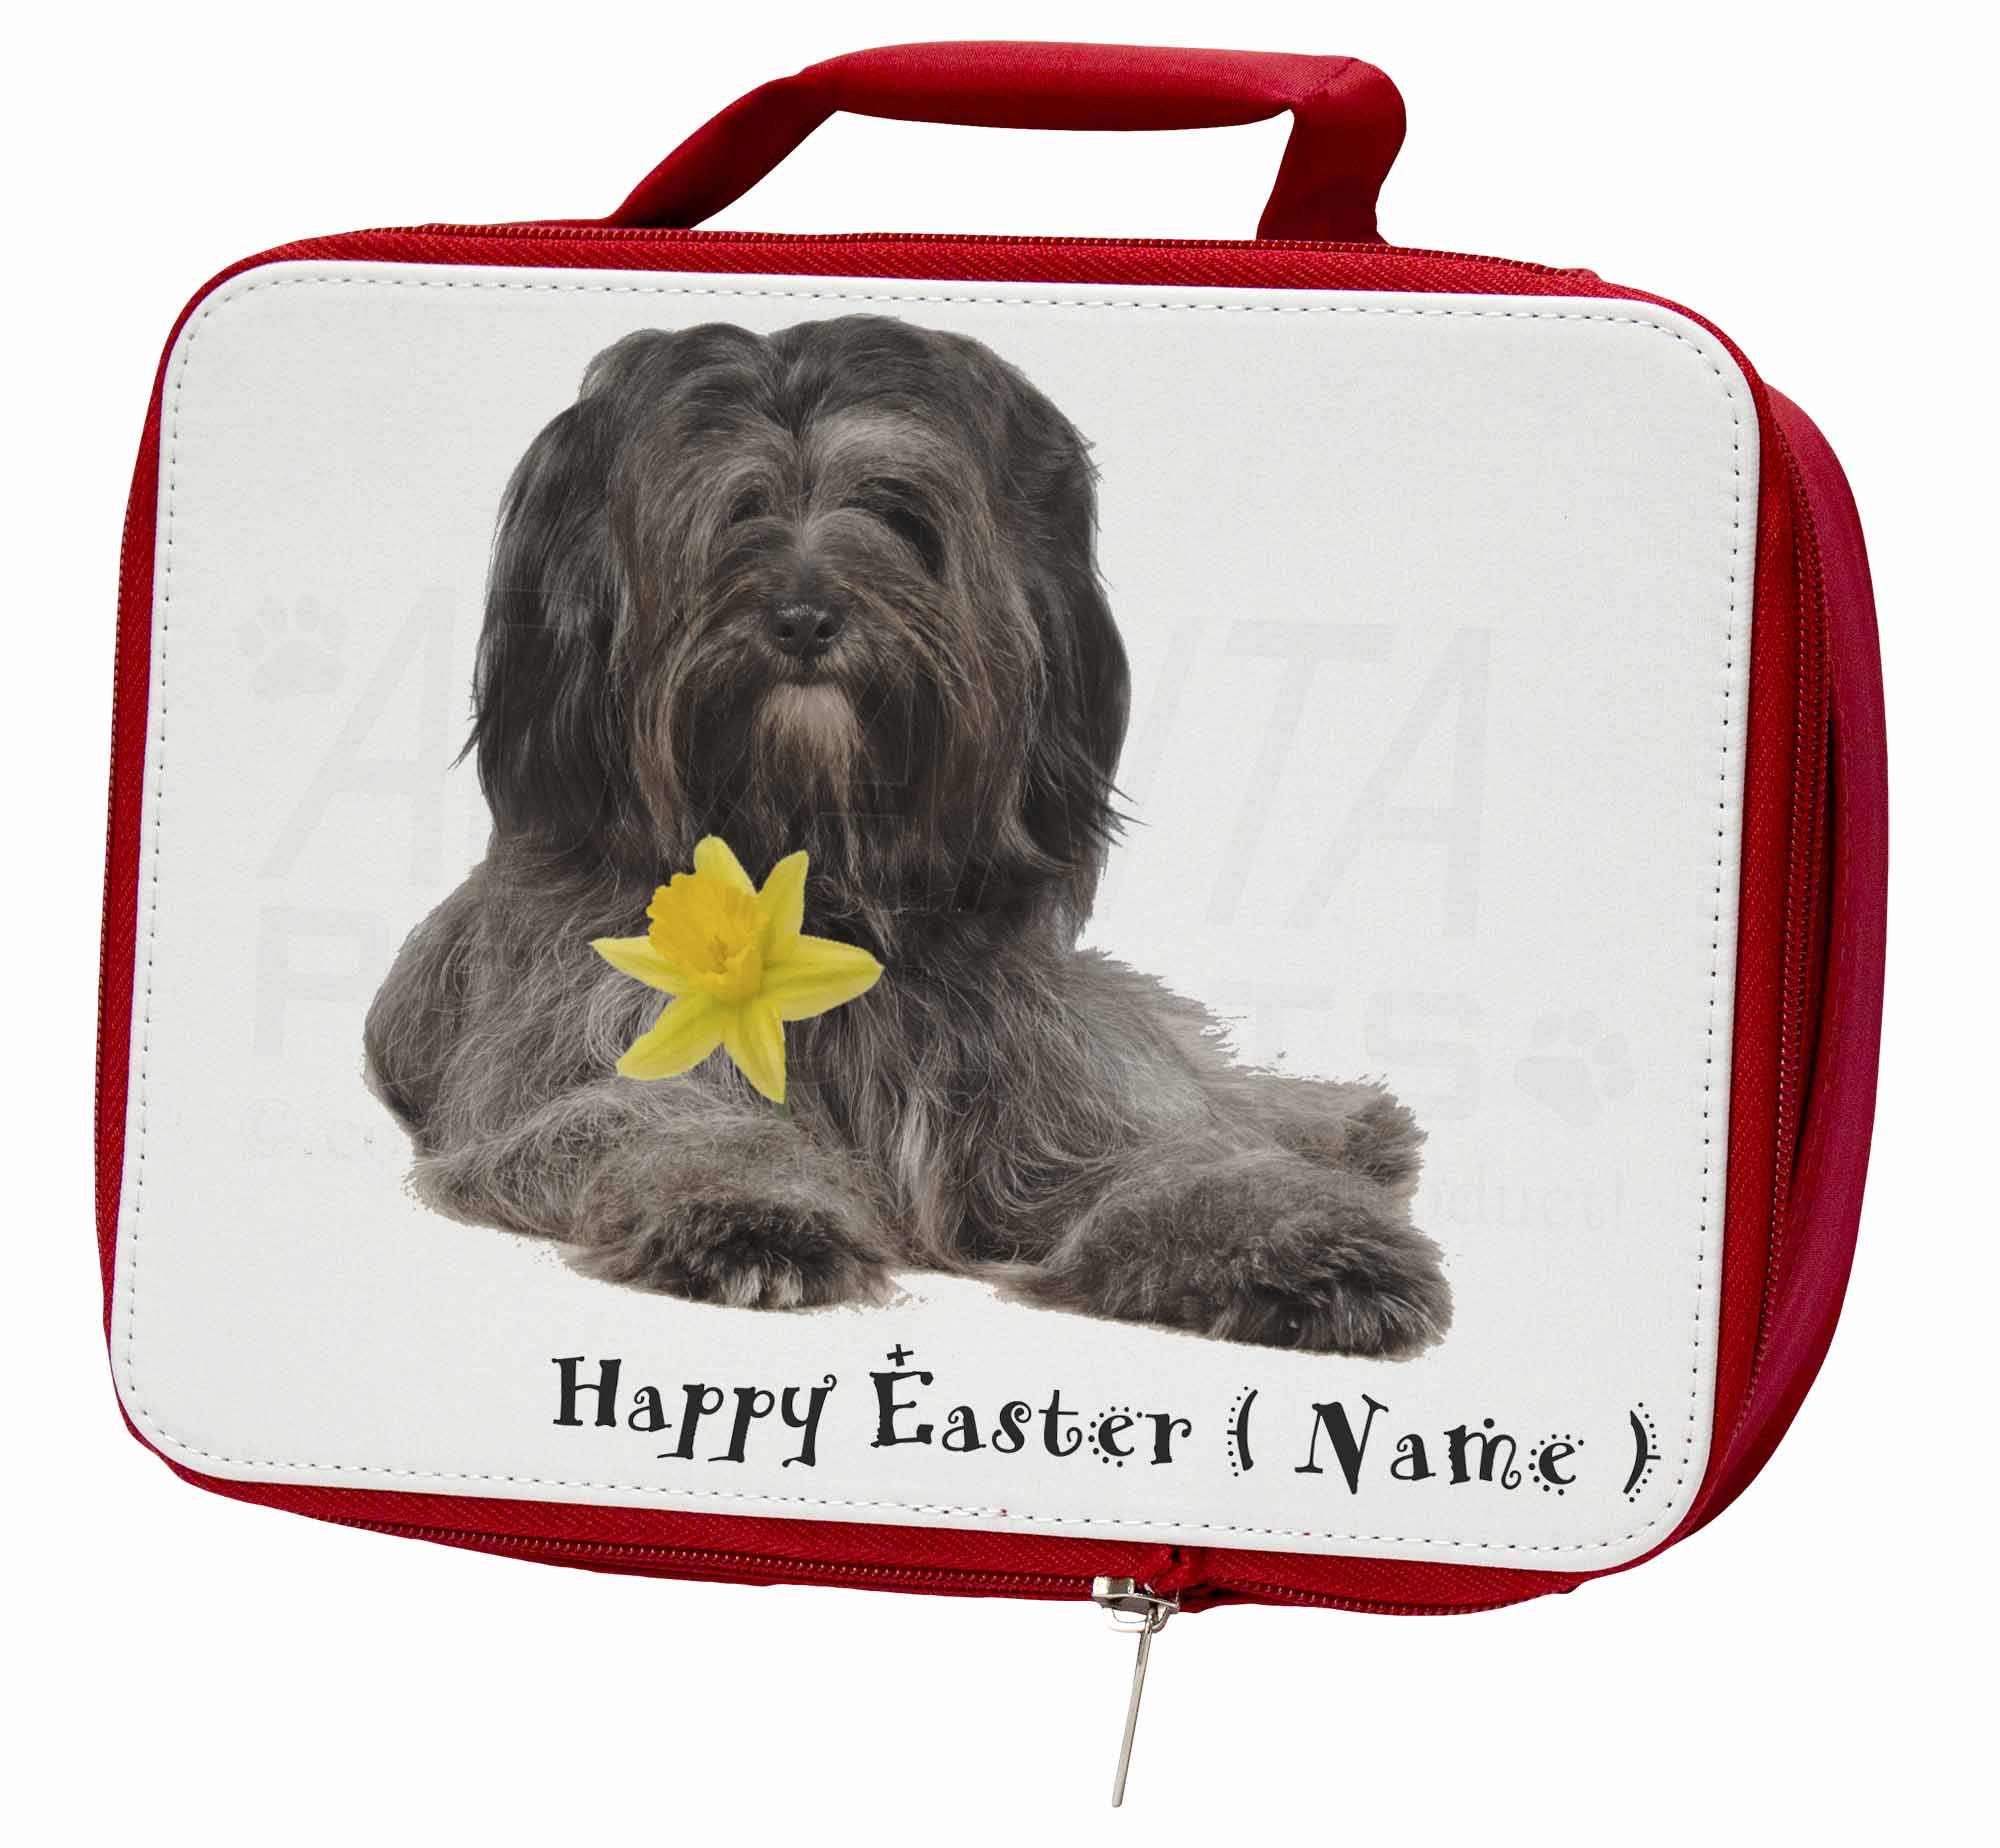 Personalised School Tibetan Terrier Insulated Red School Personalised Lunch Box/Picnic, AD-TT2DA2LBR 1dcc51